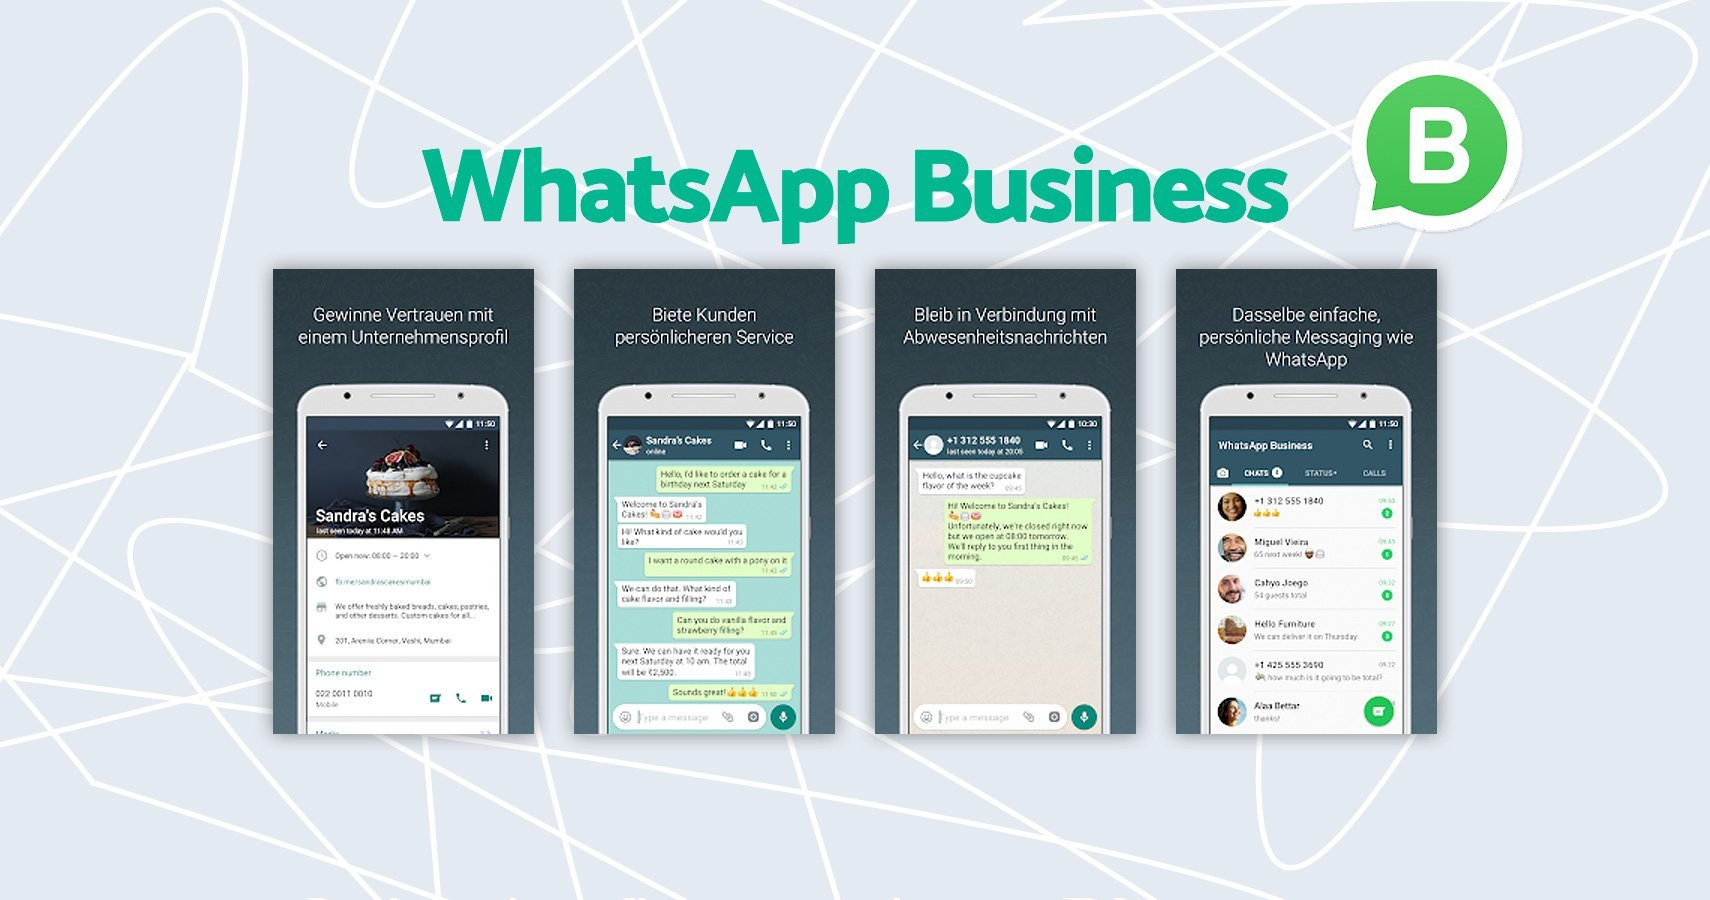 adseed - Whats App Business